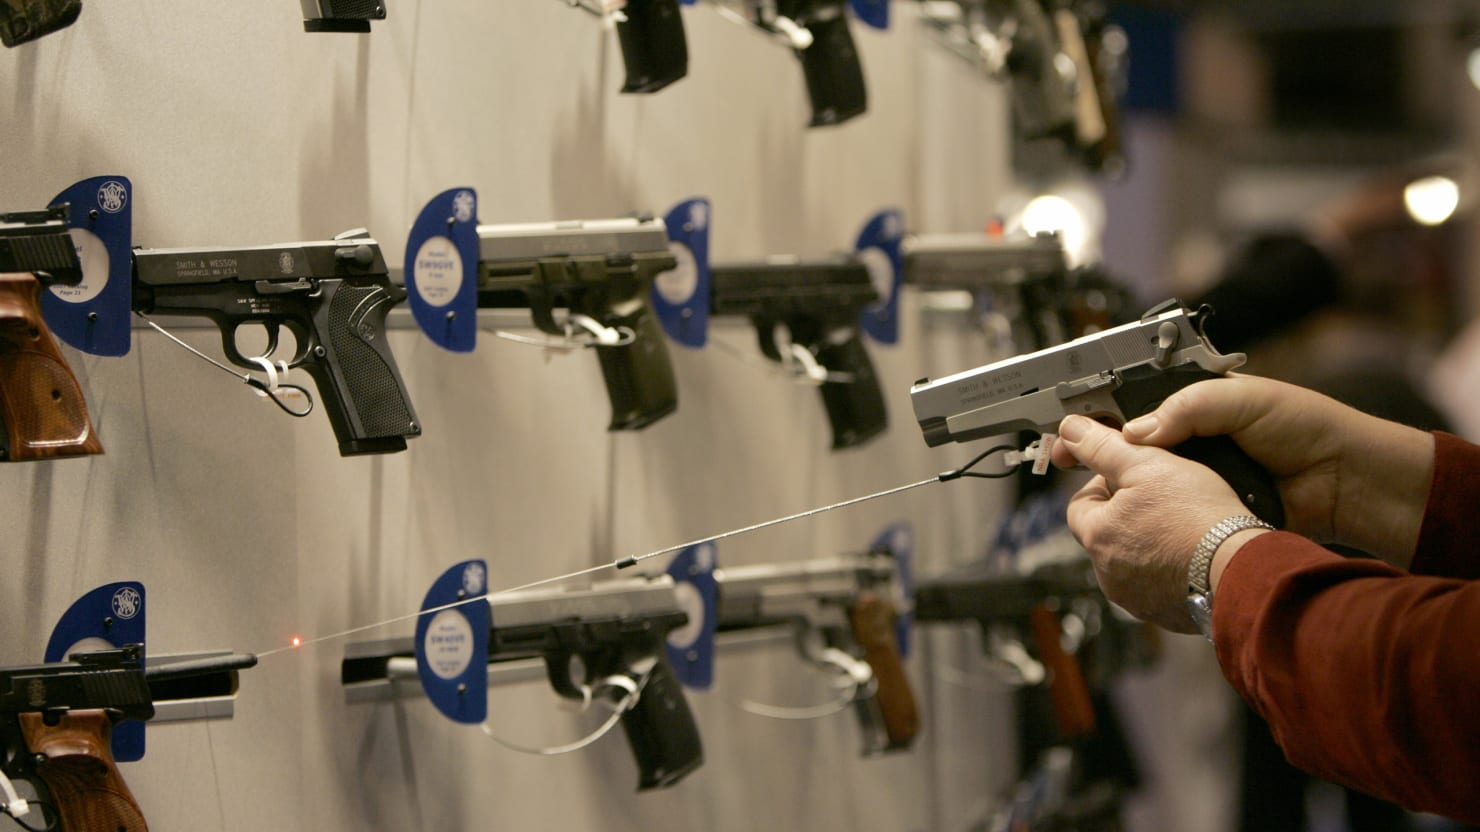 Never Mind New Guns Laws—The NRA Keeps Weakening the Existing Ones